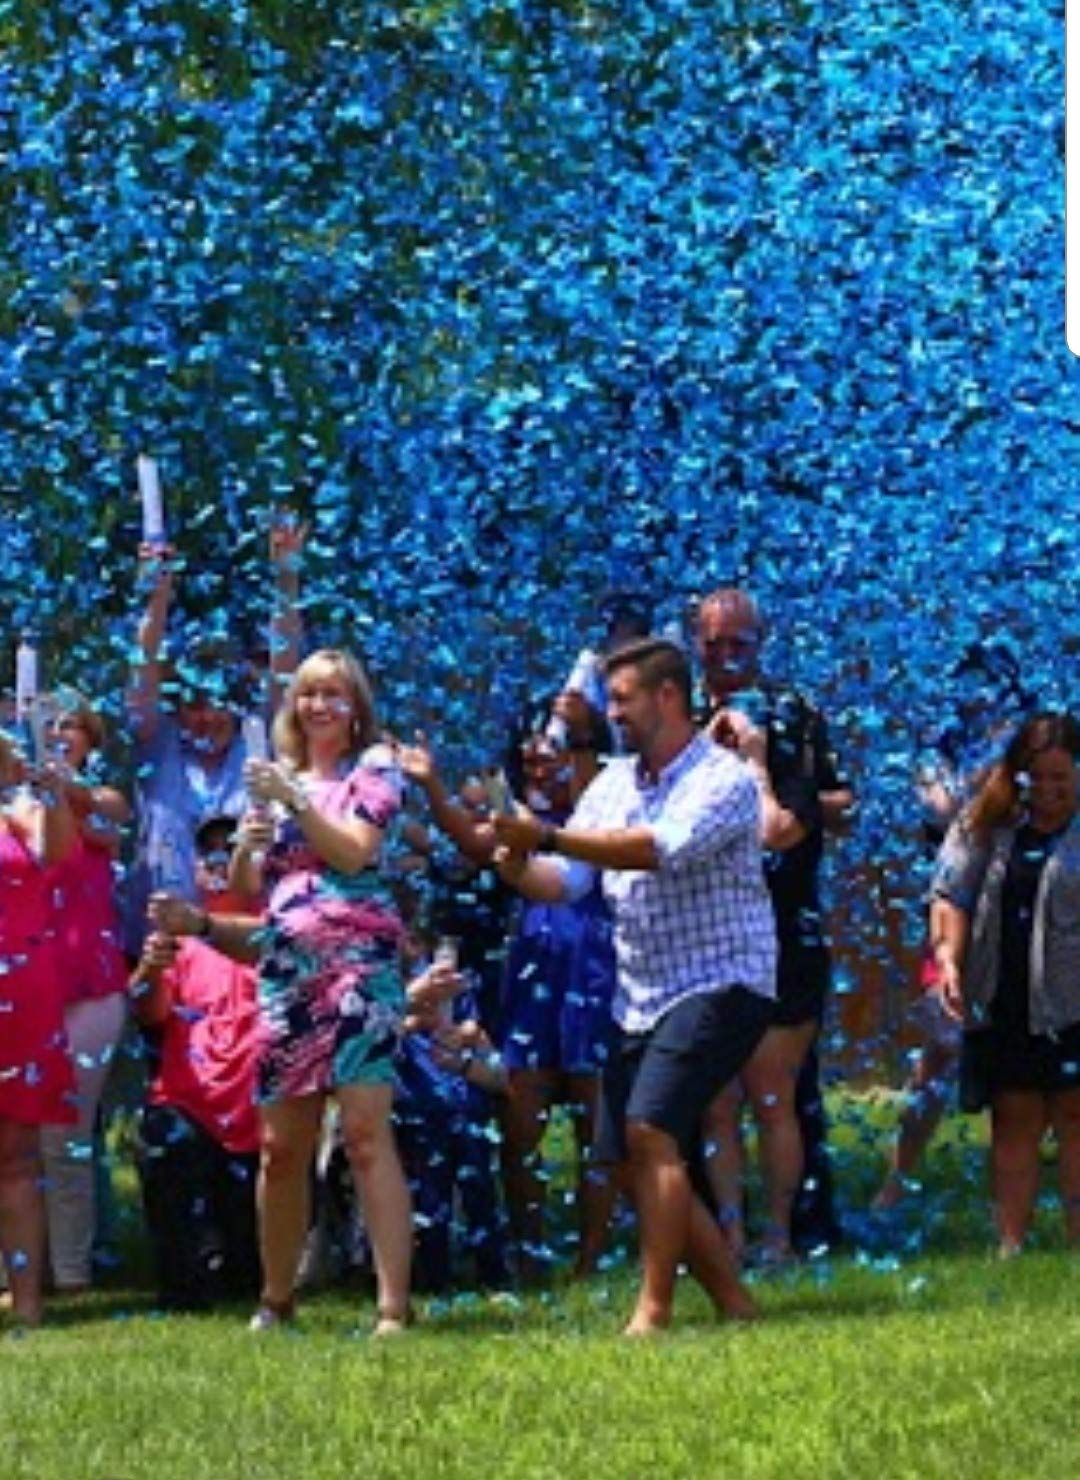 Gender Reveal Confetti Cannons Package (2 Pink & 2 Blue) | Pink and Blue Confetti Poppers | 8 Free Gender Reveal Party Balloons by Gender Reveal Surprise (Image #2)